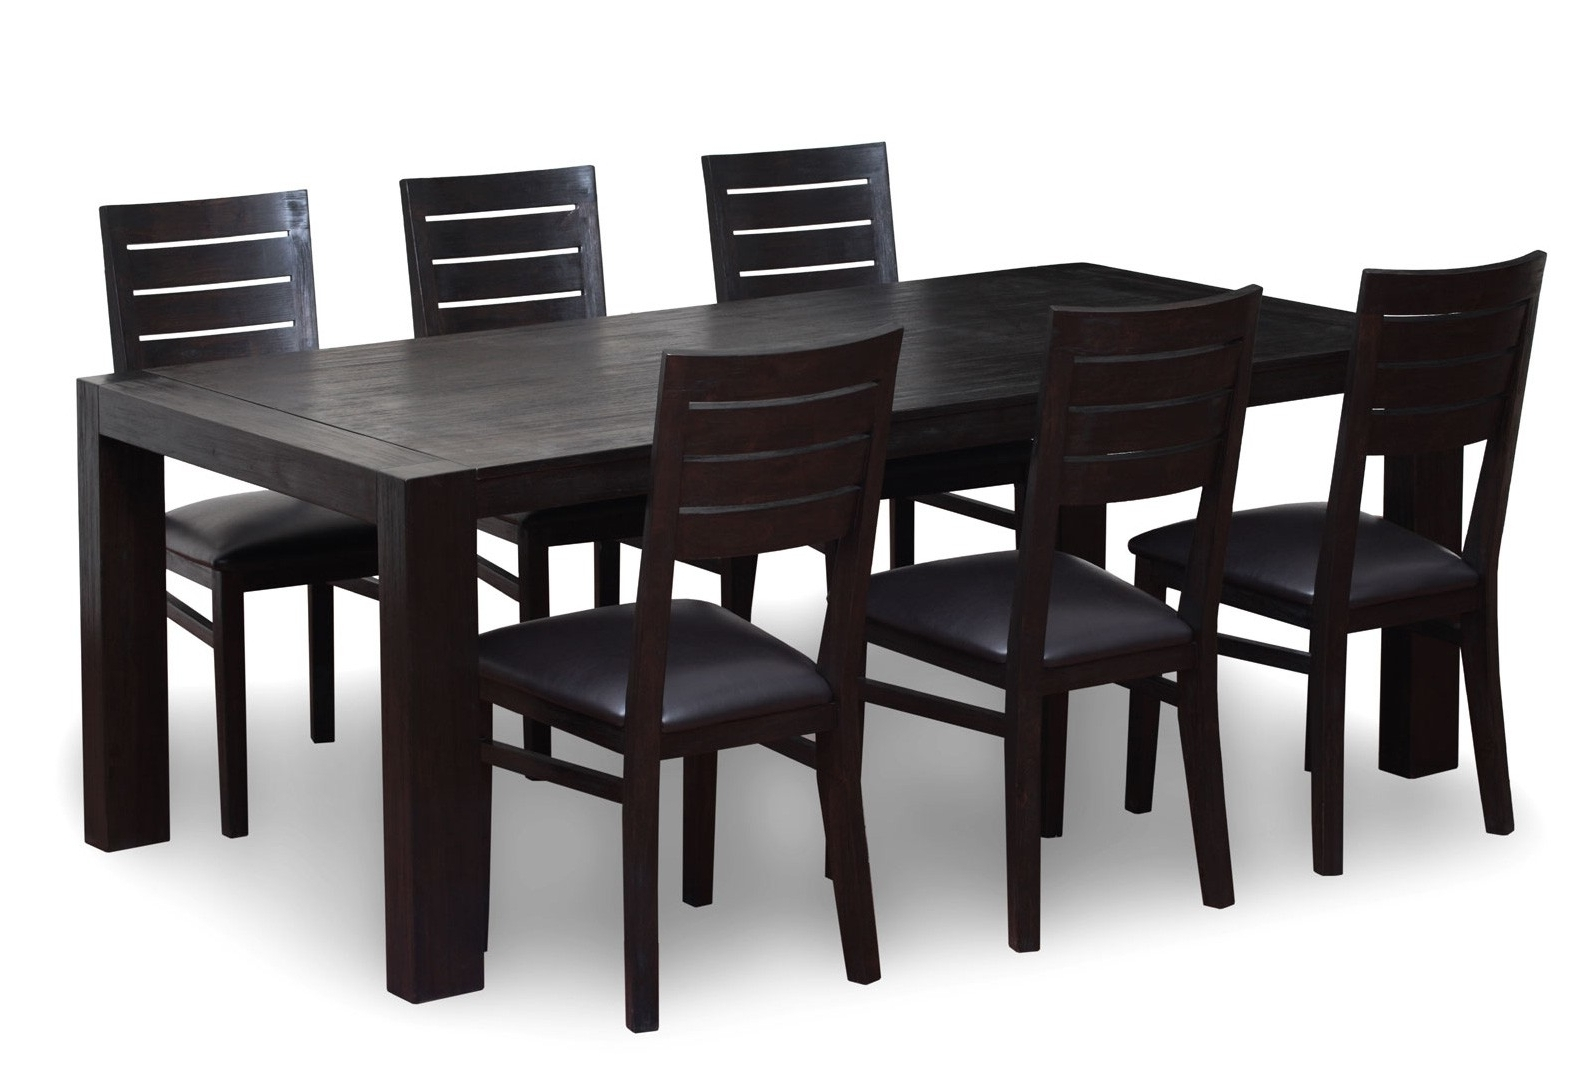 Favorite Wood Dining Tables And 6 Chairs Throughout 6 Seater Wooden Dining Table Set – Antique Ebony (View 25 of 25)